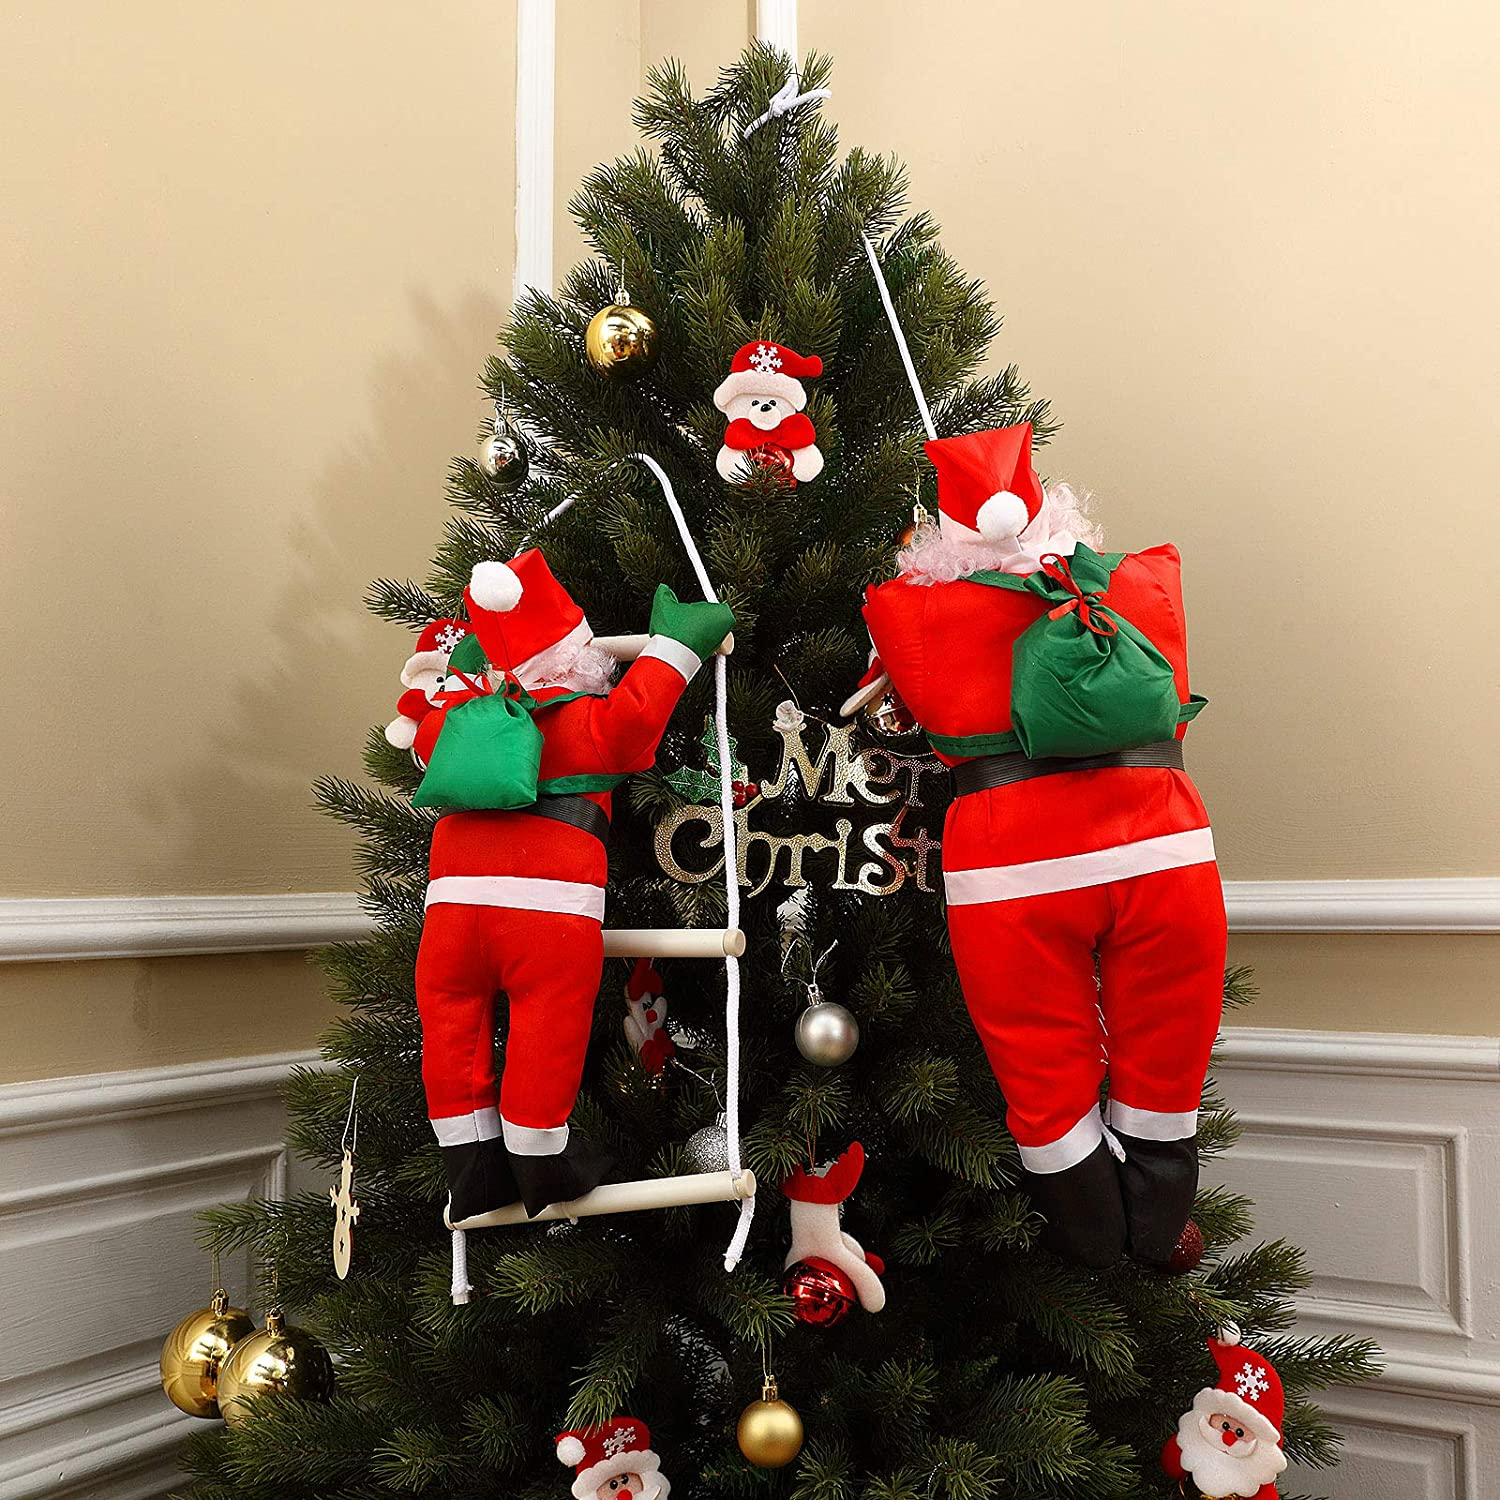 2 Pieces Santa Claus Climbing On Rope Ladder Hanging 35 Inch and 19 Inch for Christmas Tree Indoor Outdoor Hanging Ornament Decor Xmas Party Home Door Wall Decoration